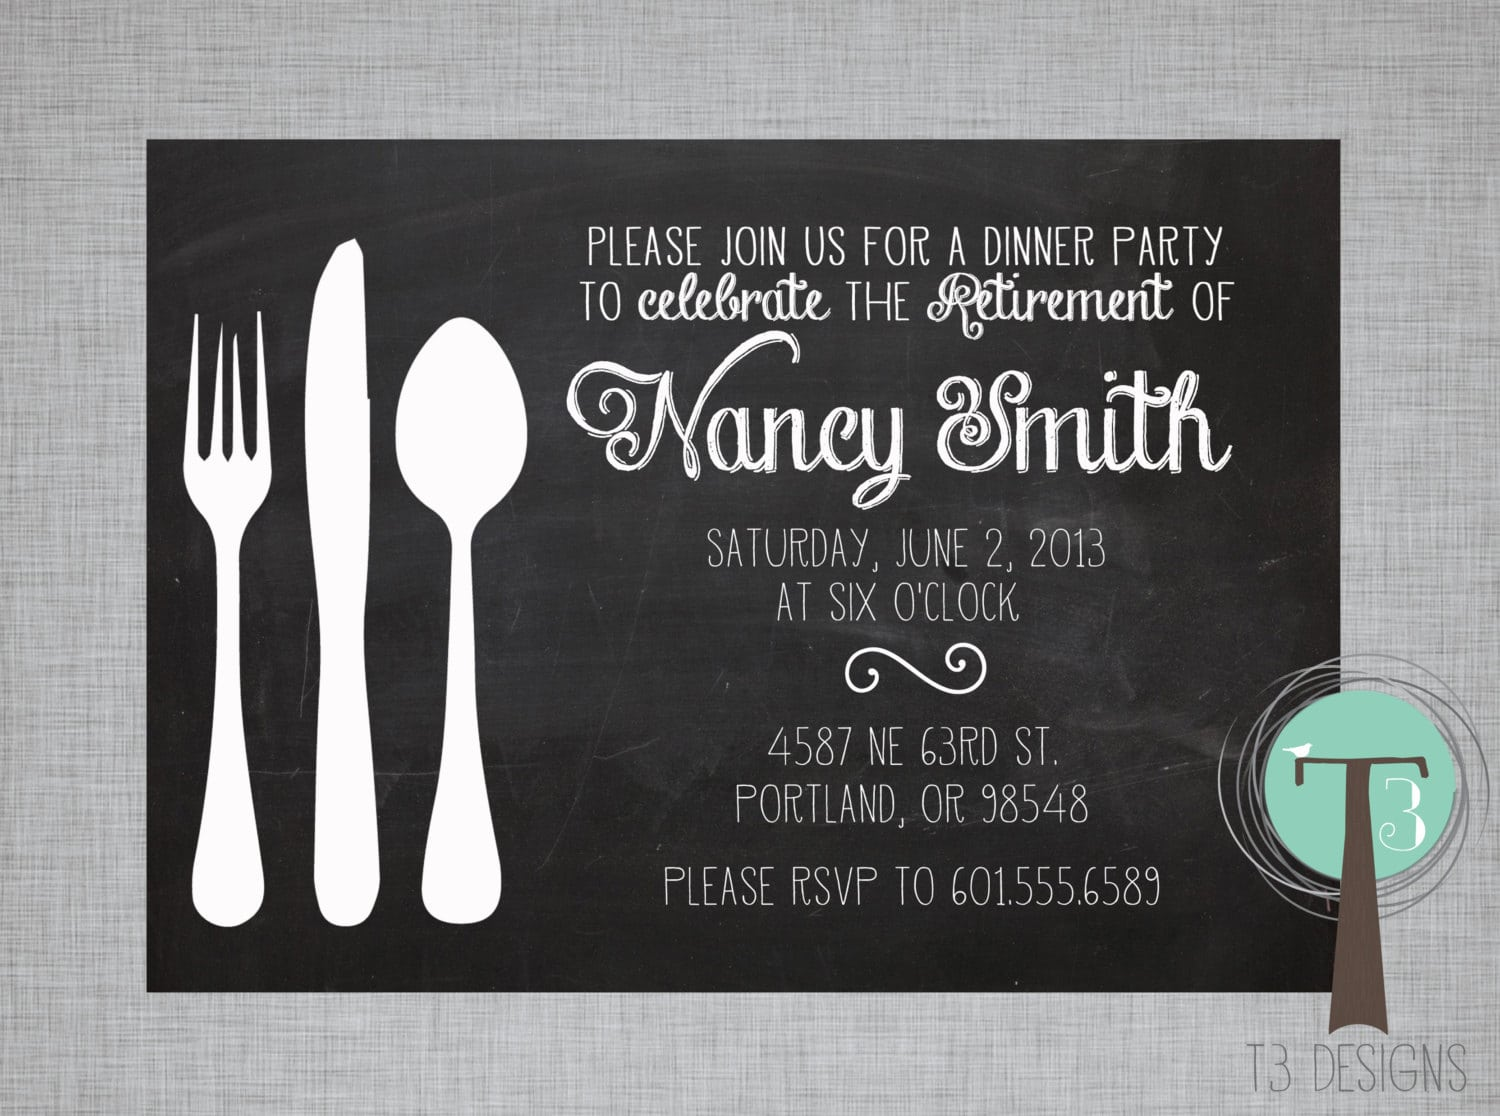 Lunch Party Invitation Wordings - Mickey Mouse Invitations Templates